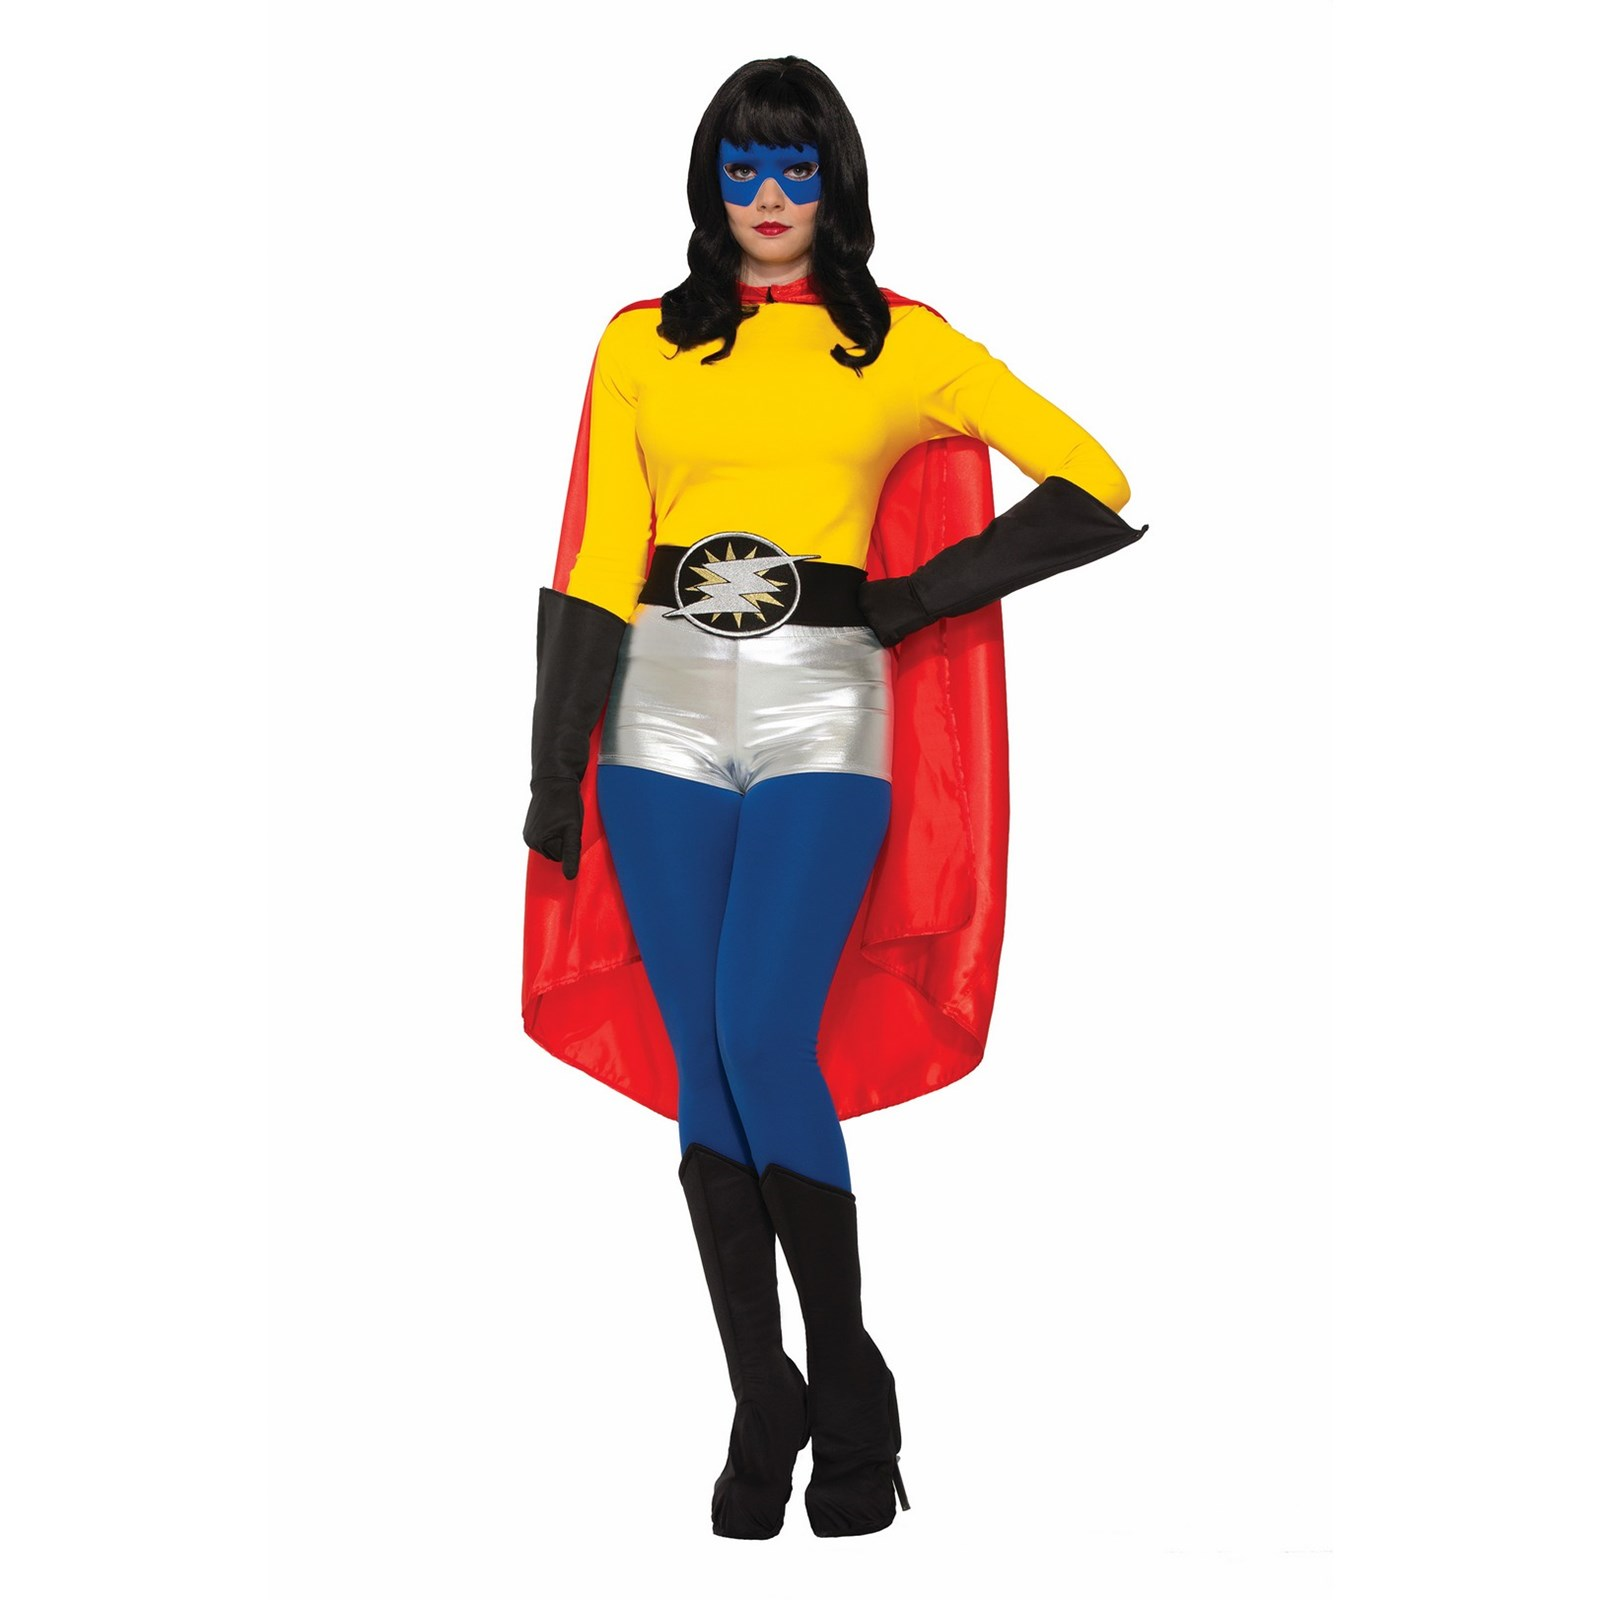 Red Adult Cape Halloween Costume Accessory